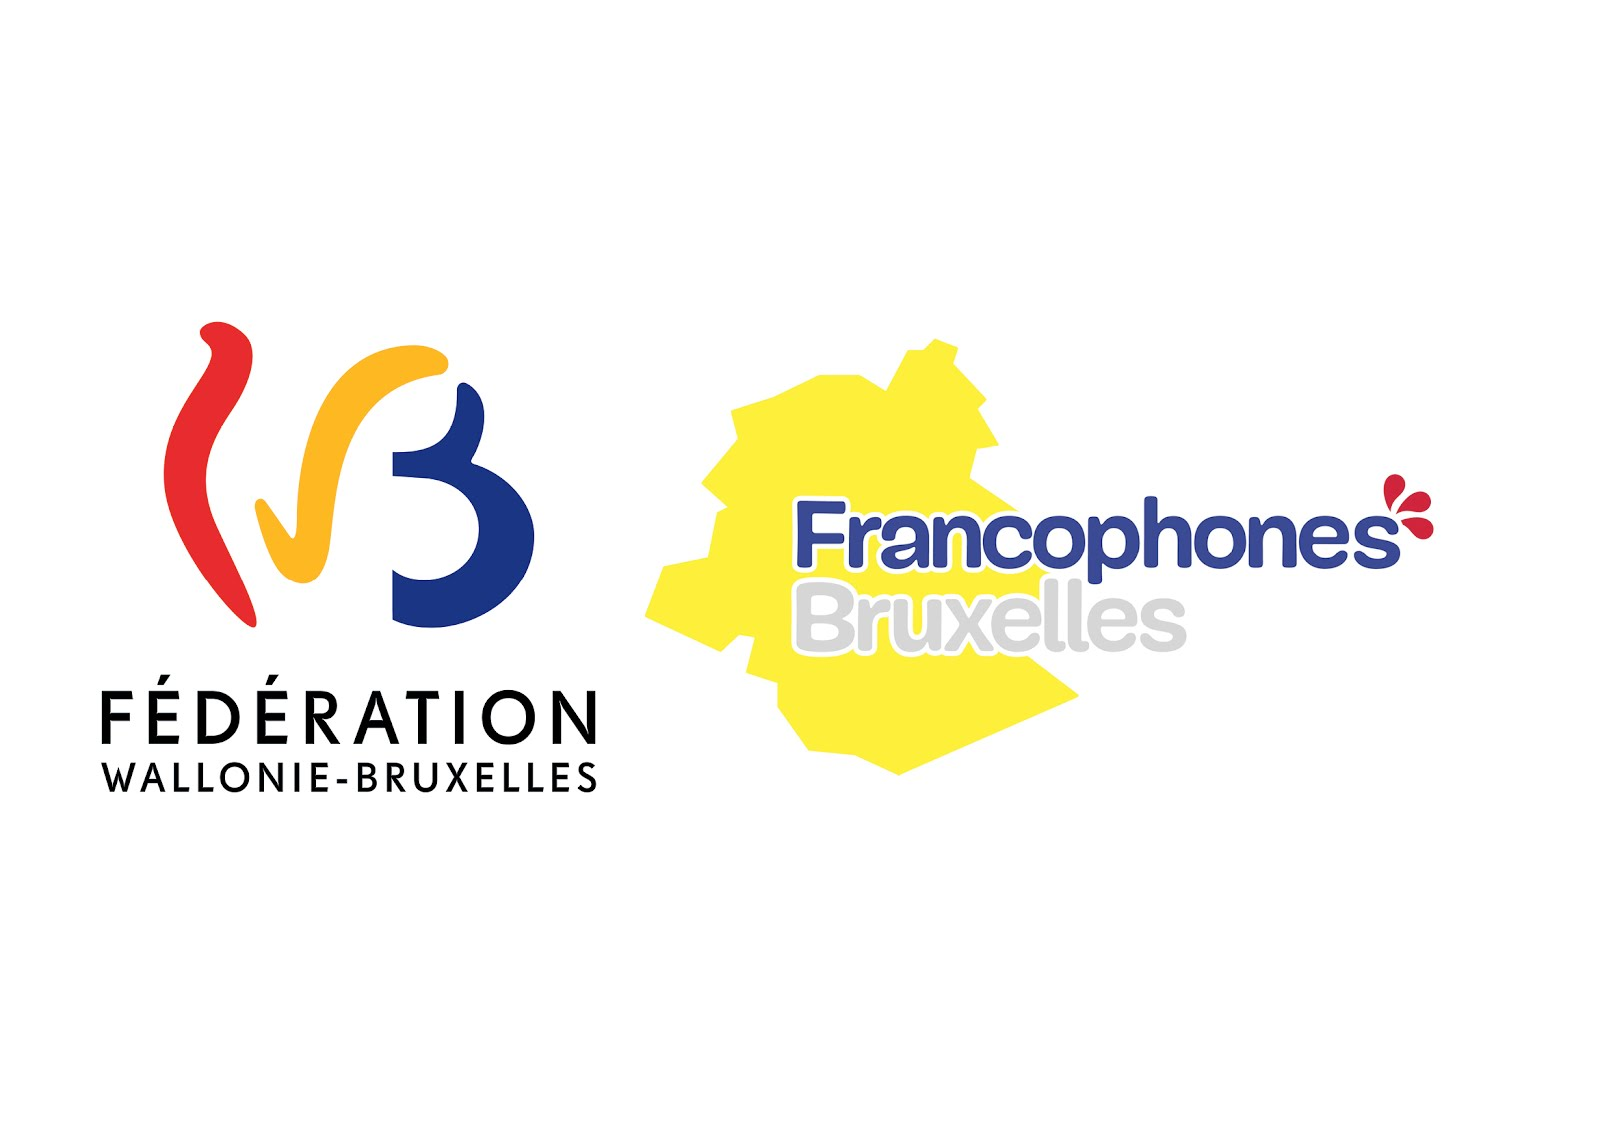 Plagiarama wishes to warmly thanks Fédération Wallonie - Bruxelles and COCOF for their support